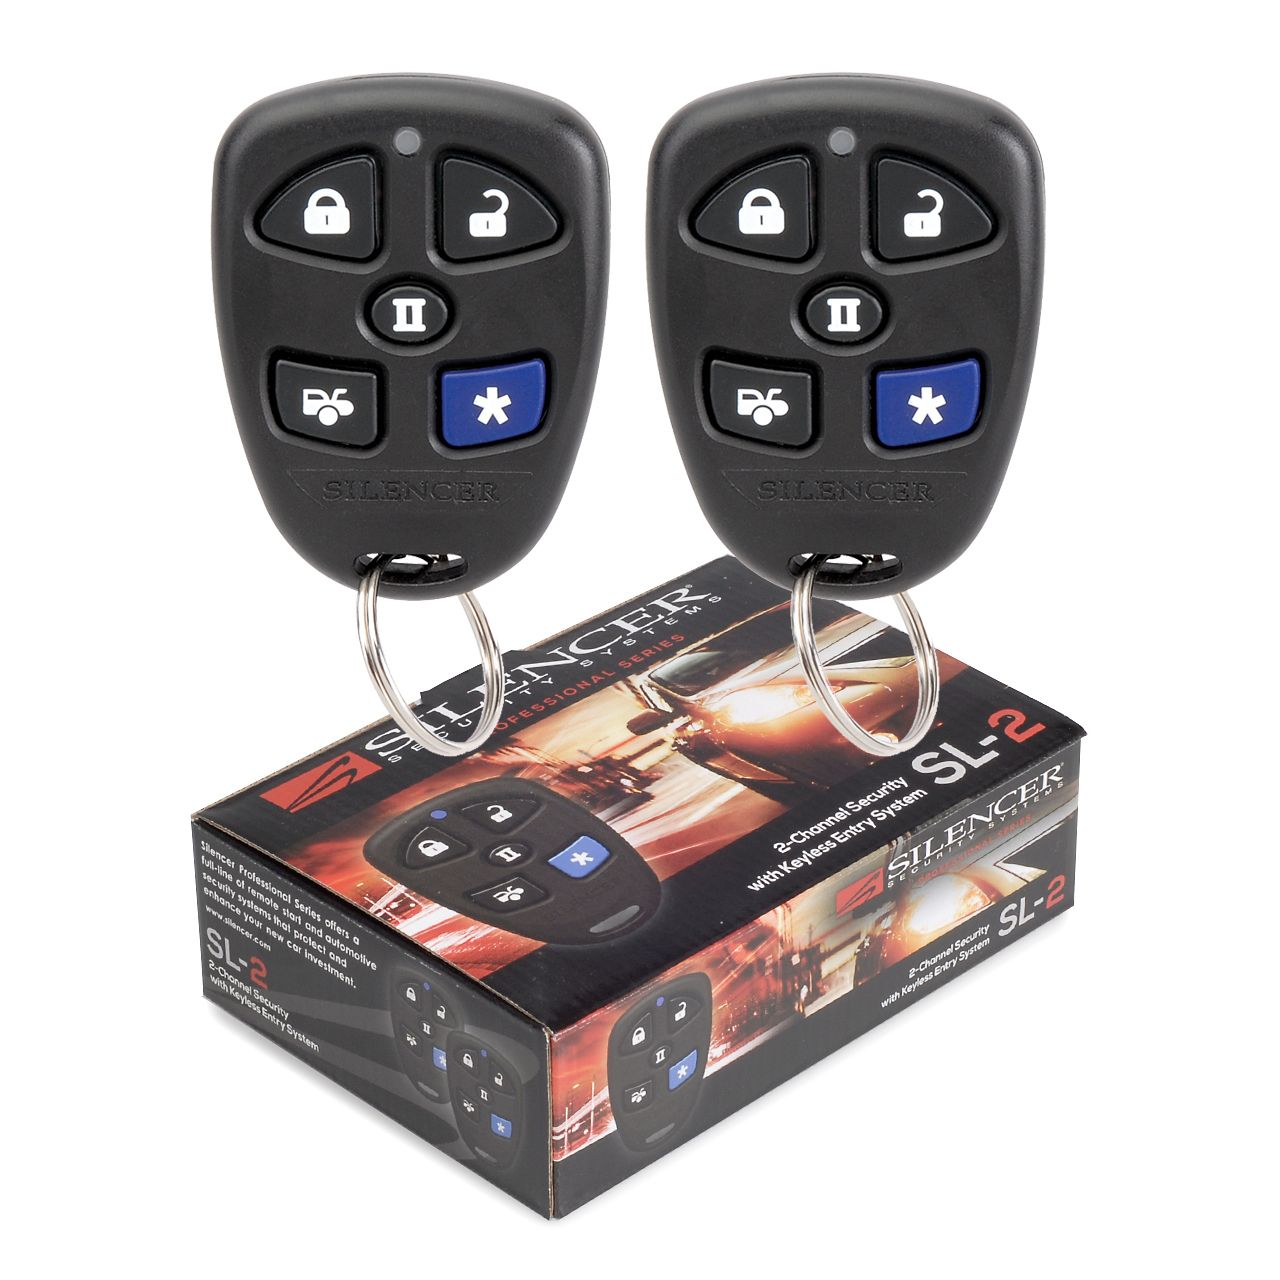 Silencer SL2 2 Channel Security System no siren